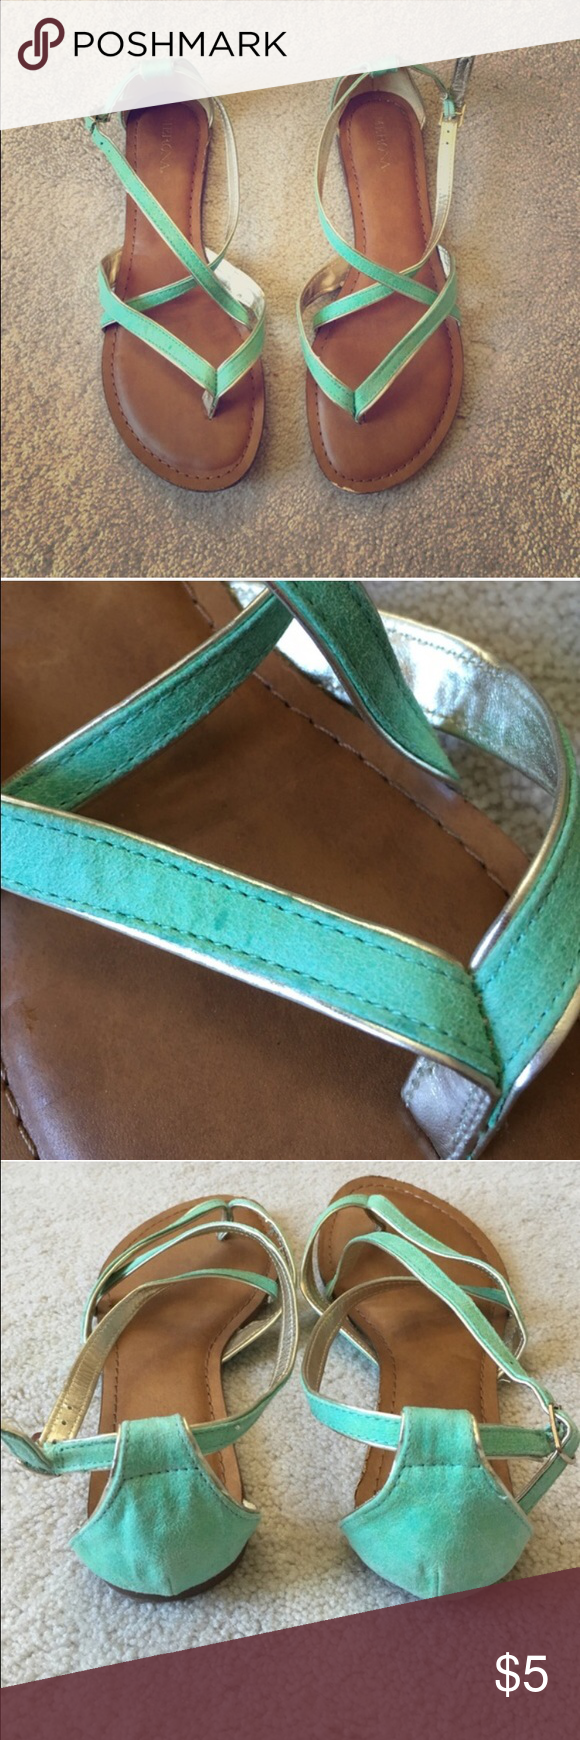 Mint and gold strappy sandals Mint and gold strappy sandals in excellent condition Merona Shoes Sandals